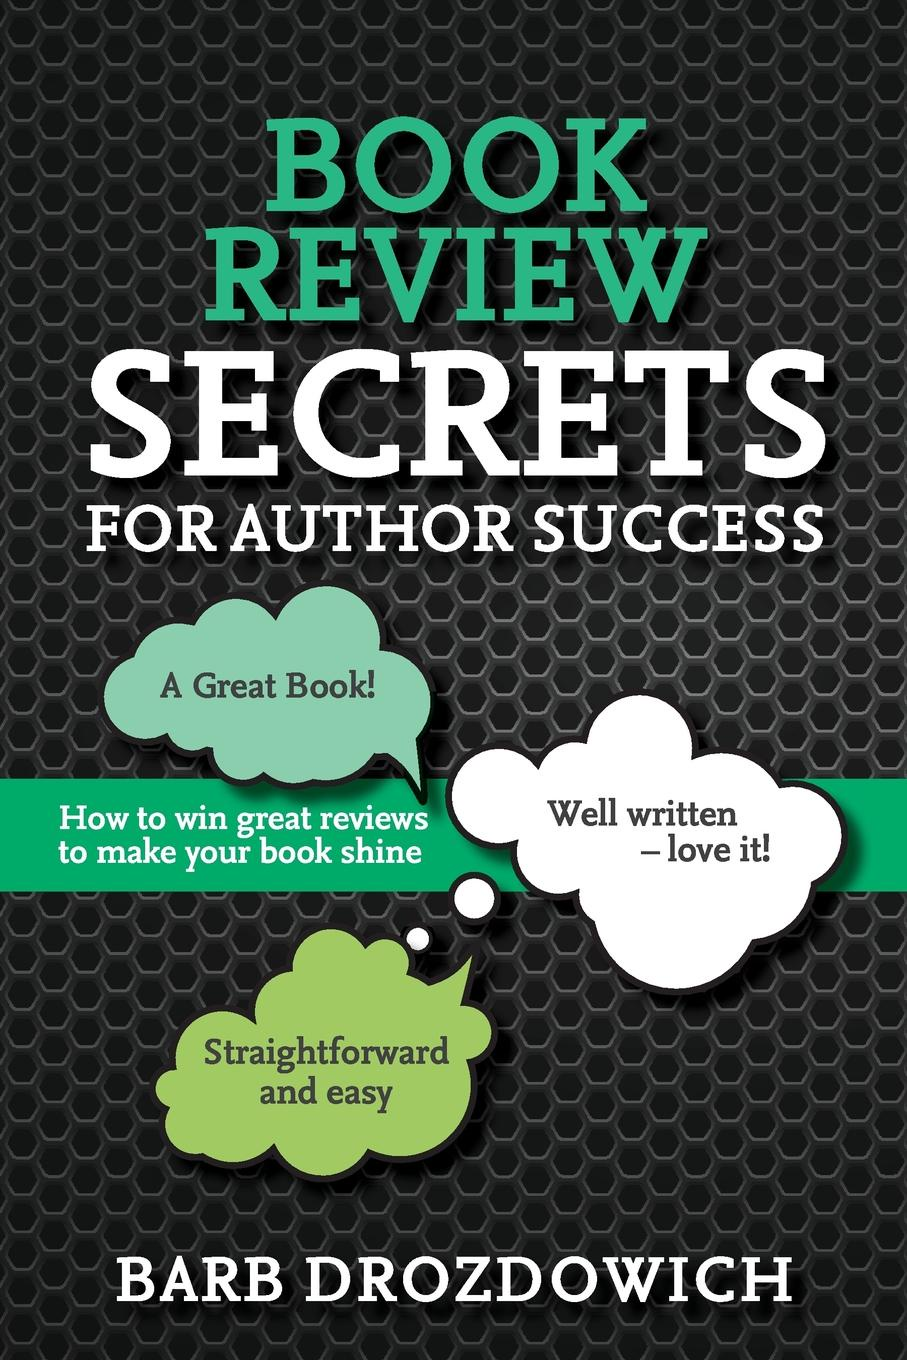 Barb Drozdowich Book Reviews for Author Success. How to win great reviews to make your book shine barb drozdowich blogging for authors